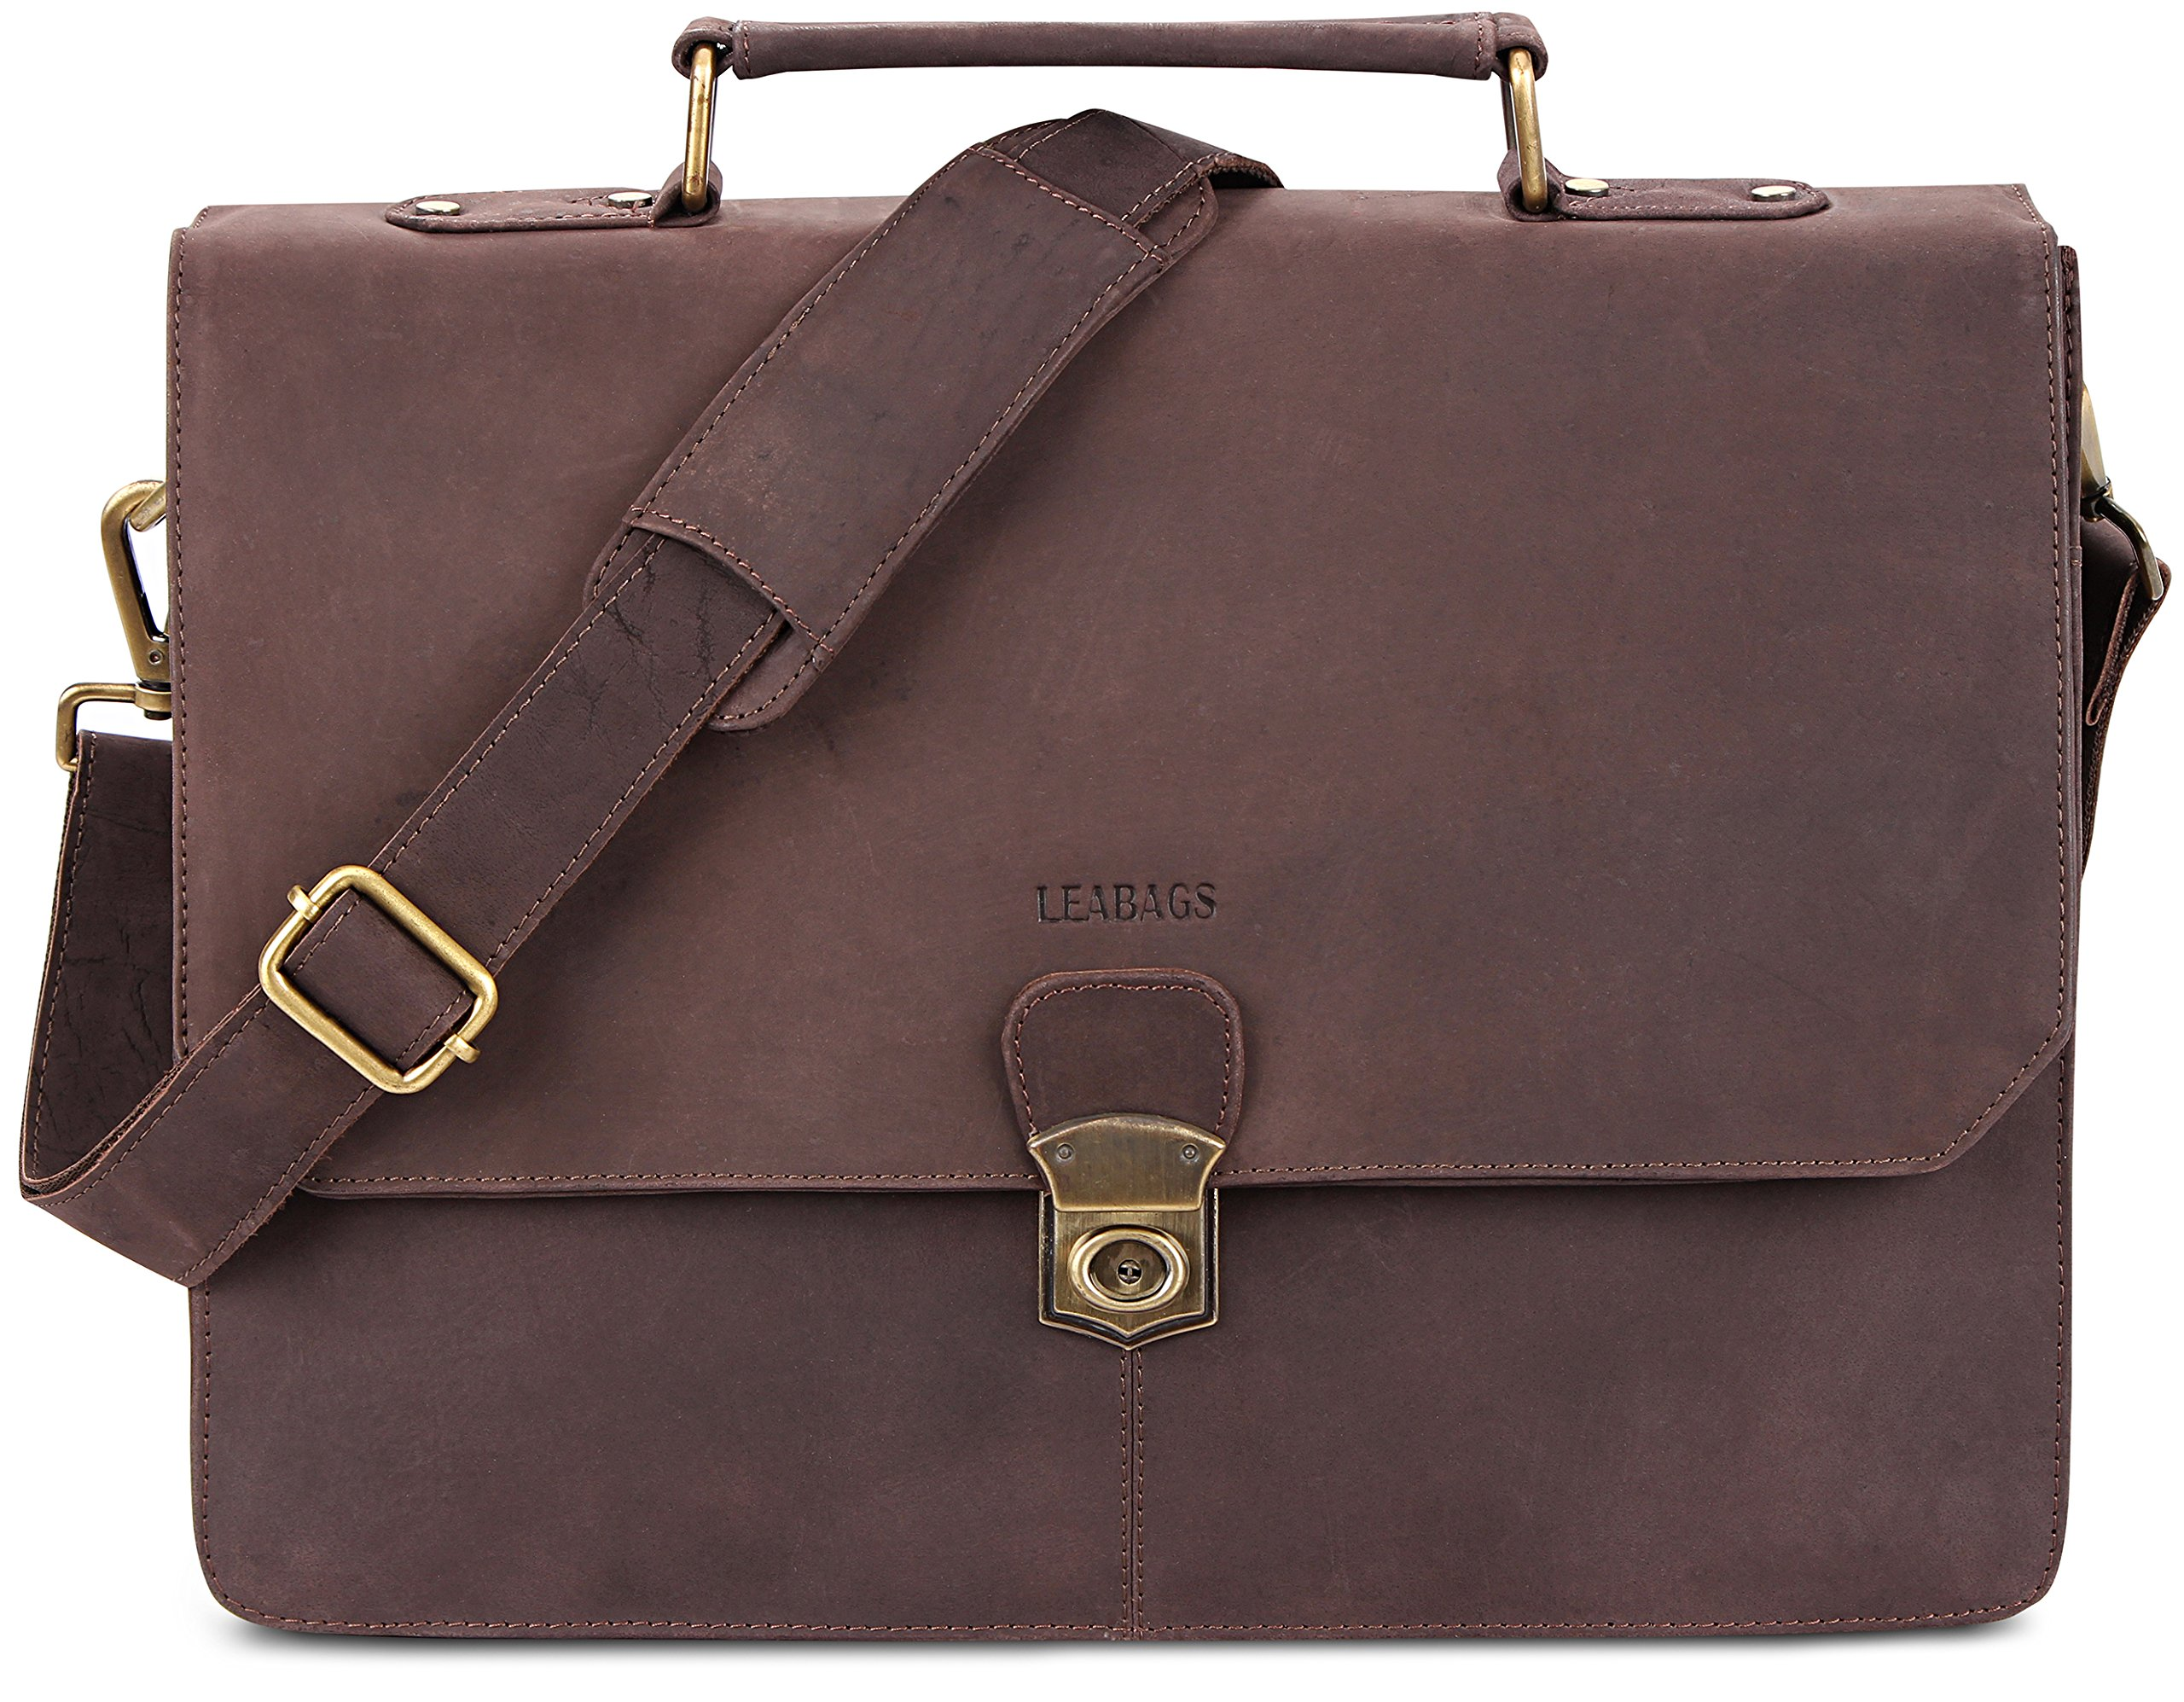 LEABAGS Brandon genuine buffalo leather briefcase in vintage style - Nutmeg